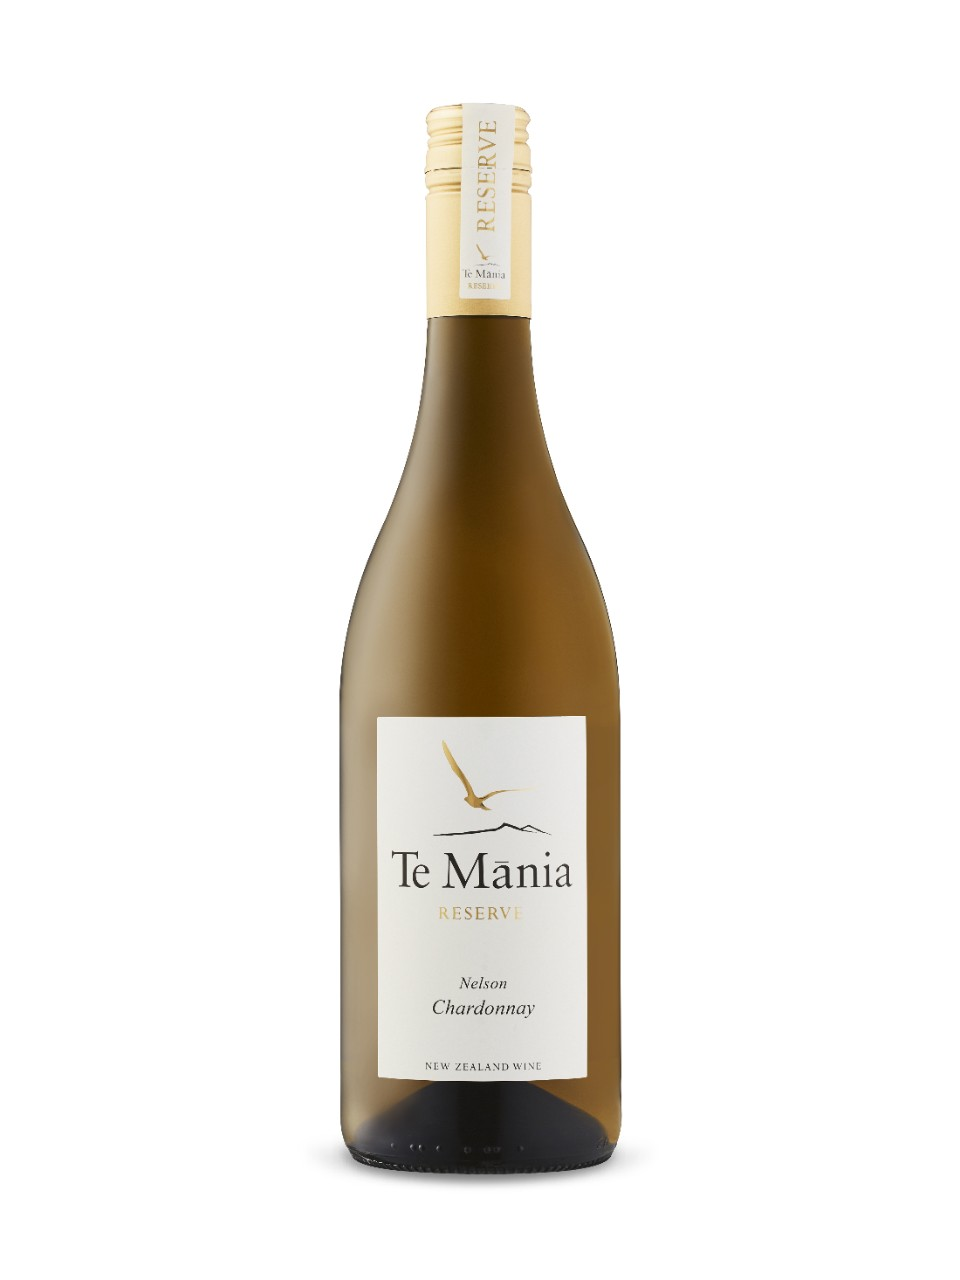 Chardonnay Reserve Nelson Te Mania 2015